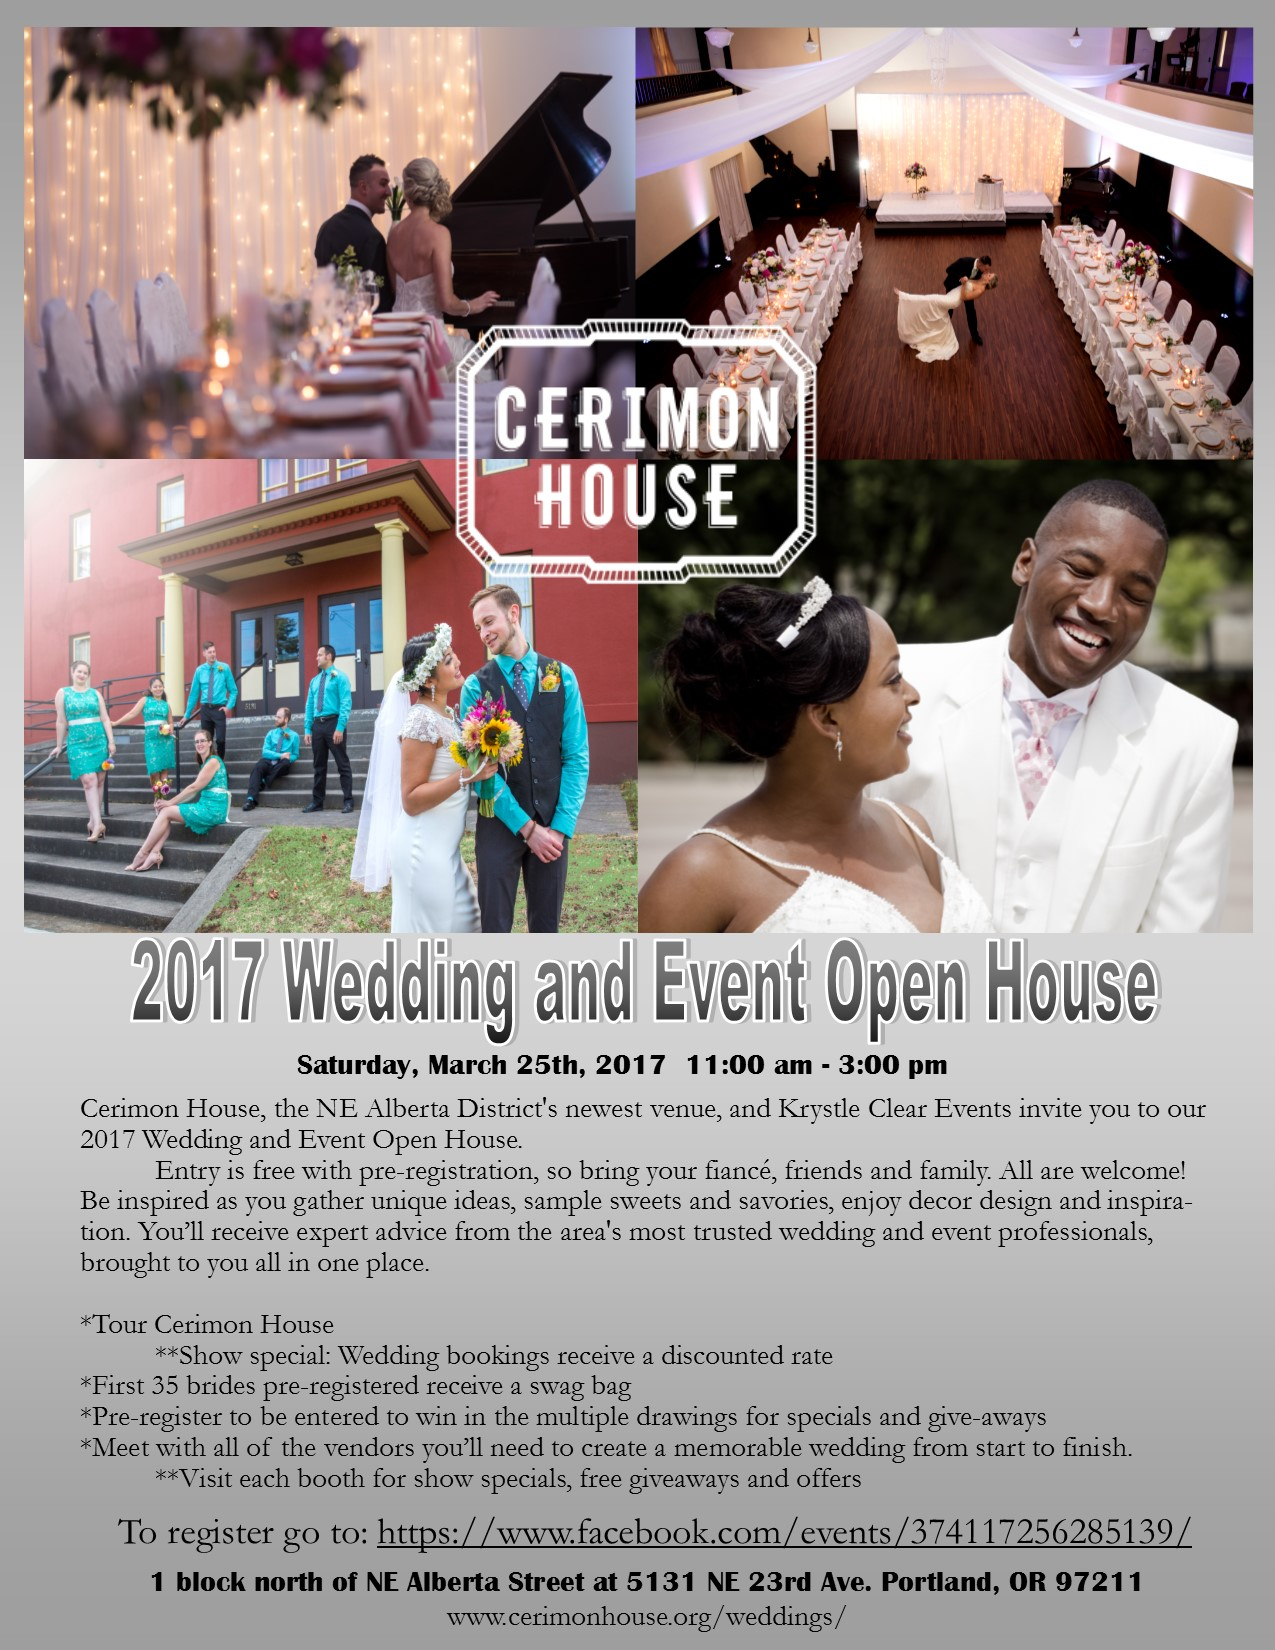 2017 wedding and event open house